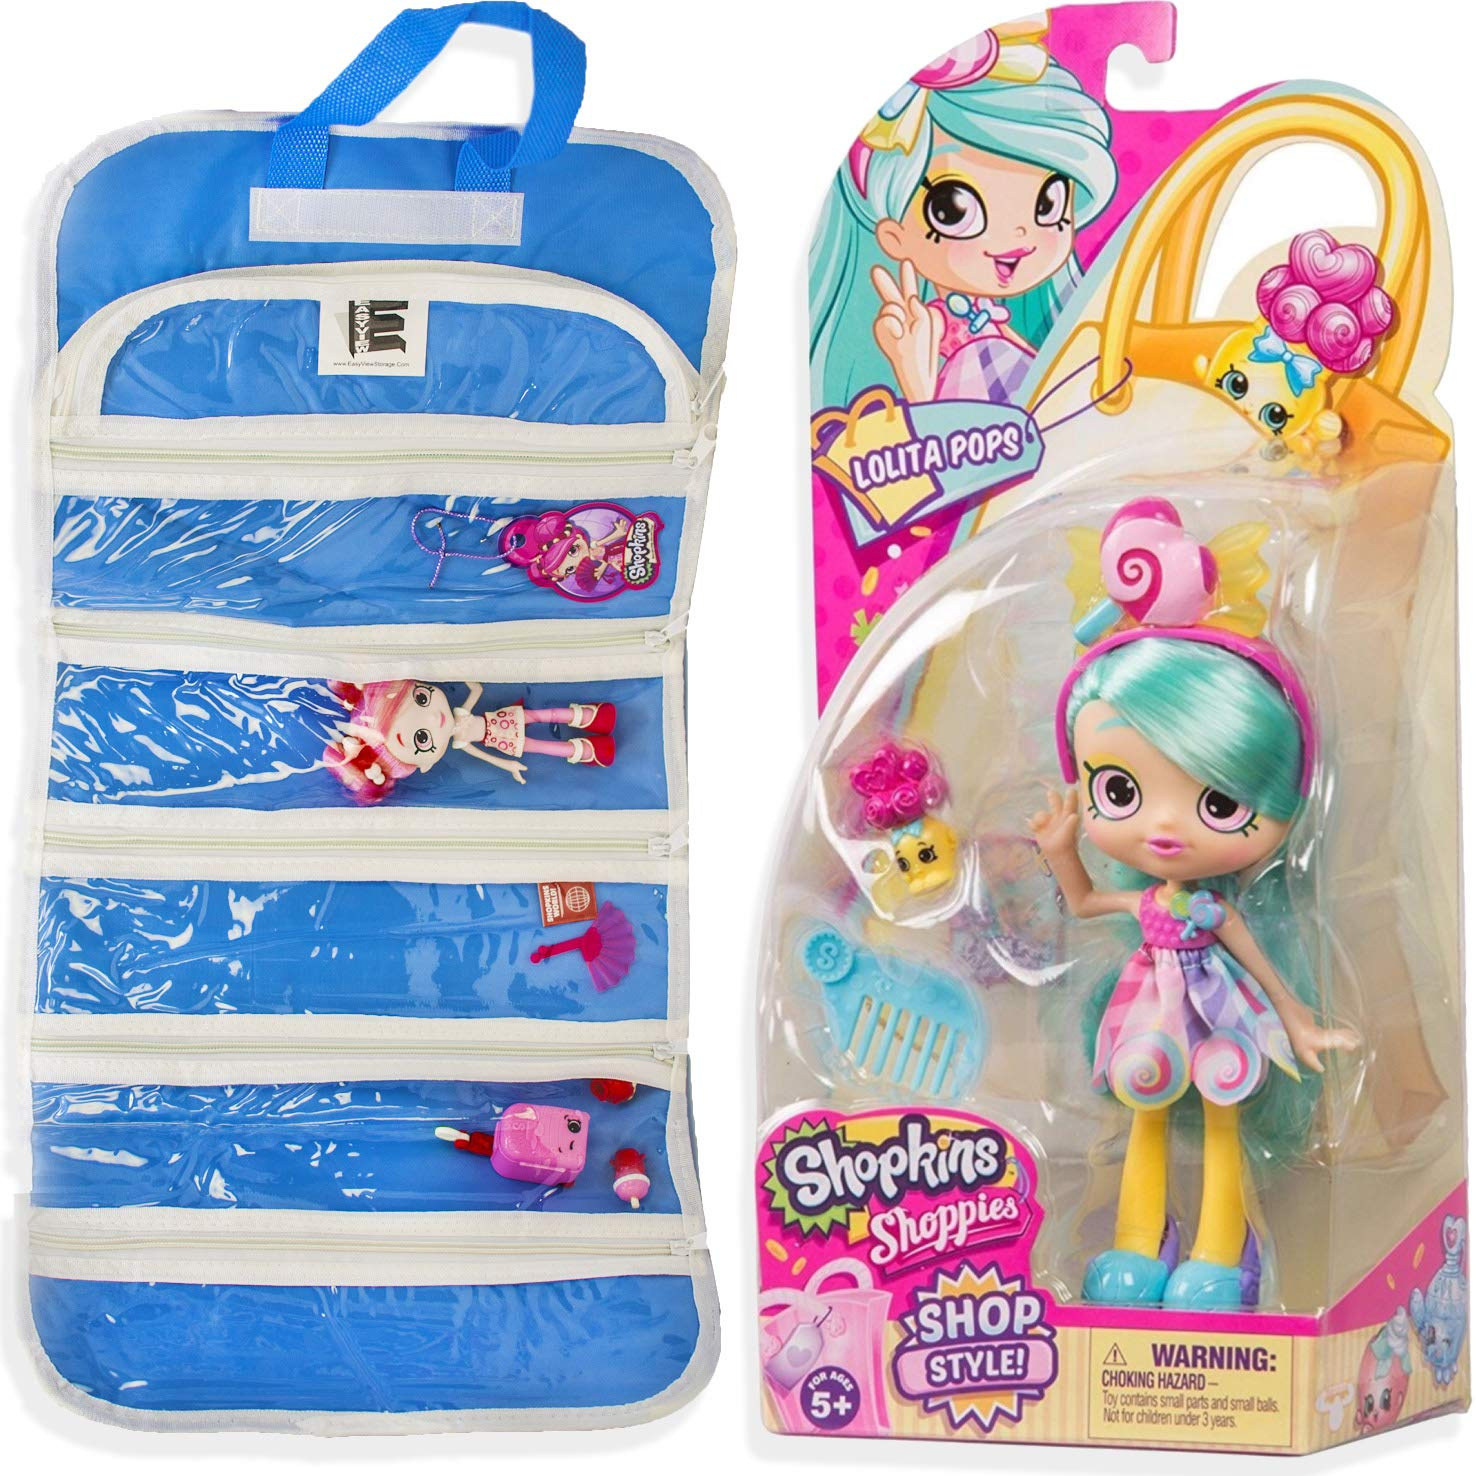 EASYVIEW Shoppies Doll Shopkin and Accessories Compatible Blue Toy Organizer Case Blue-Case